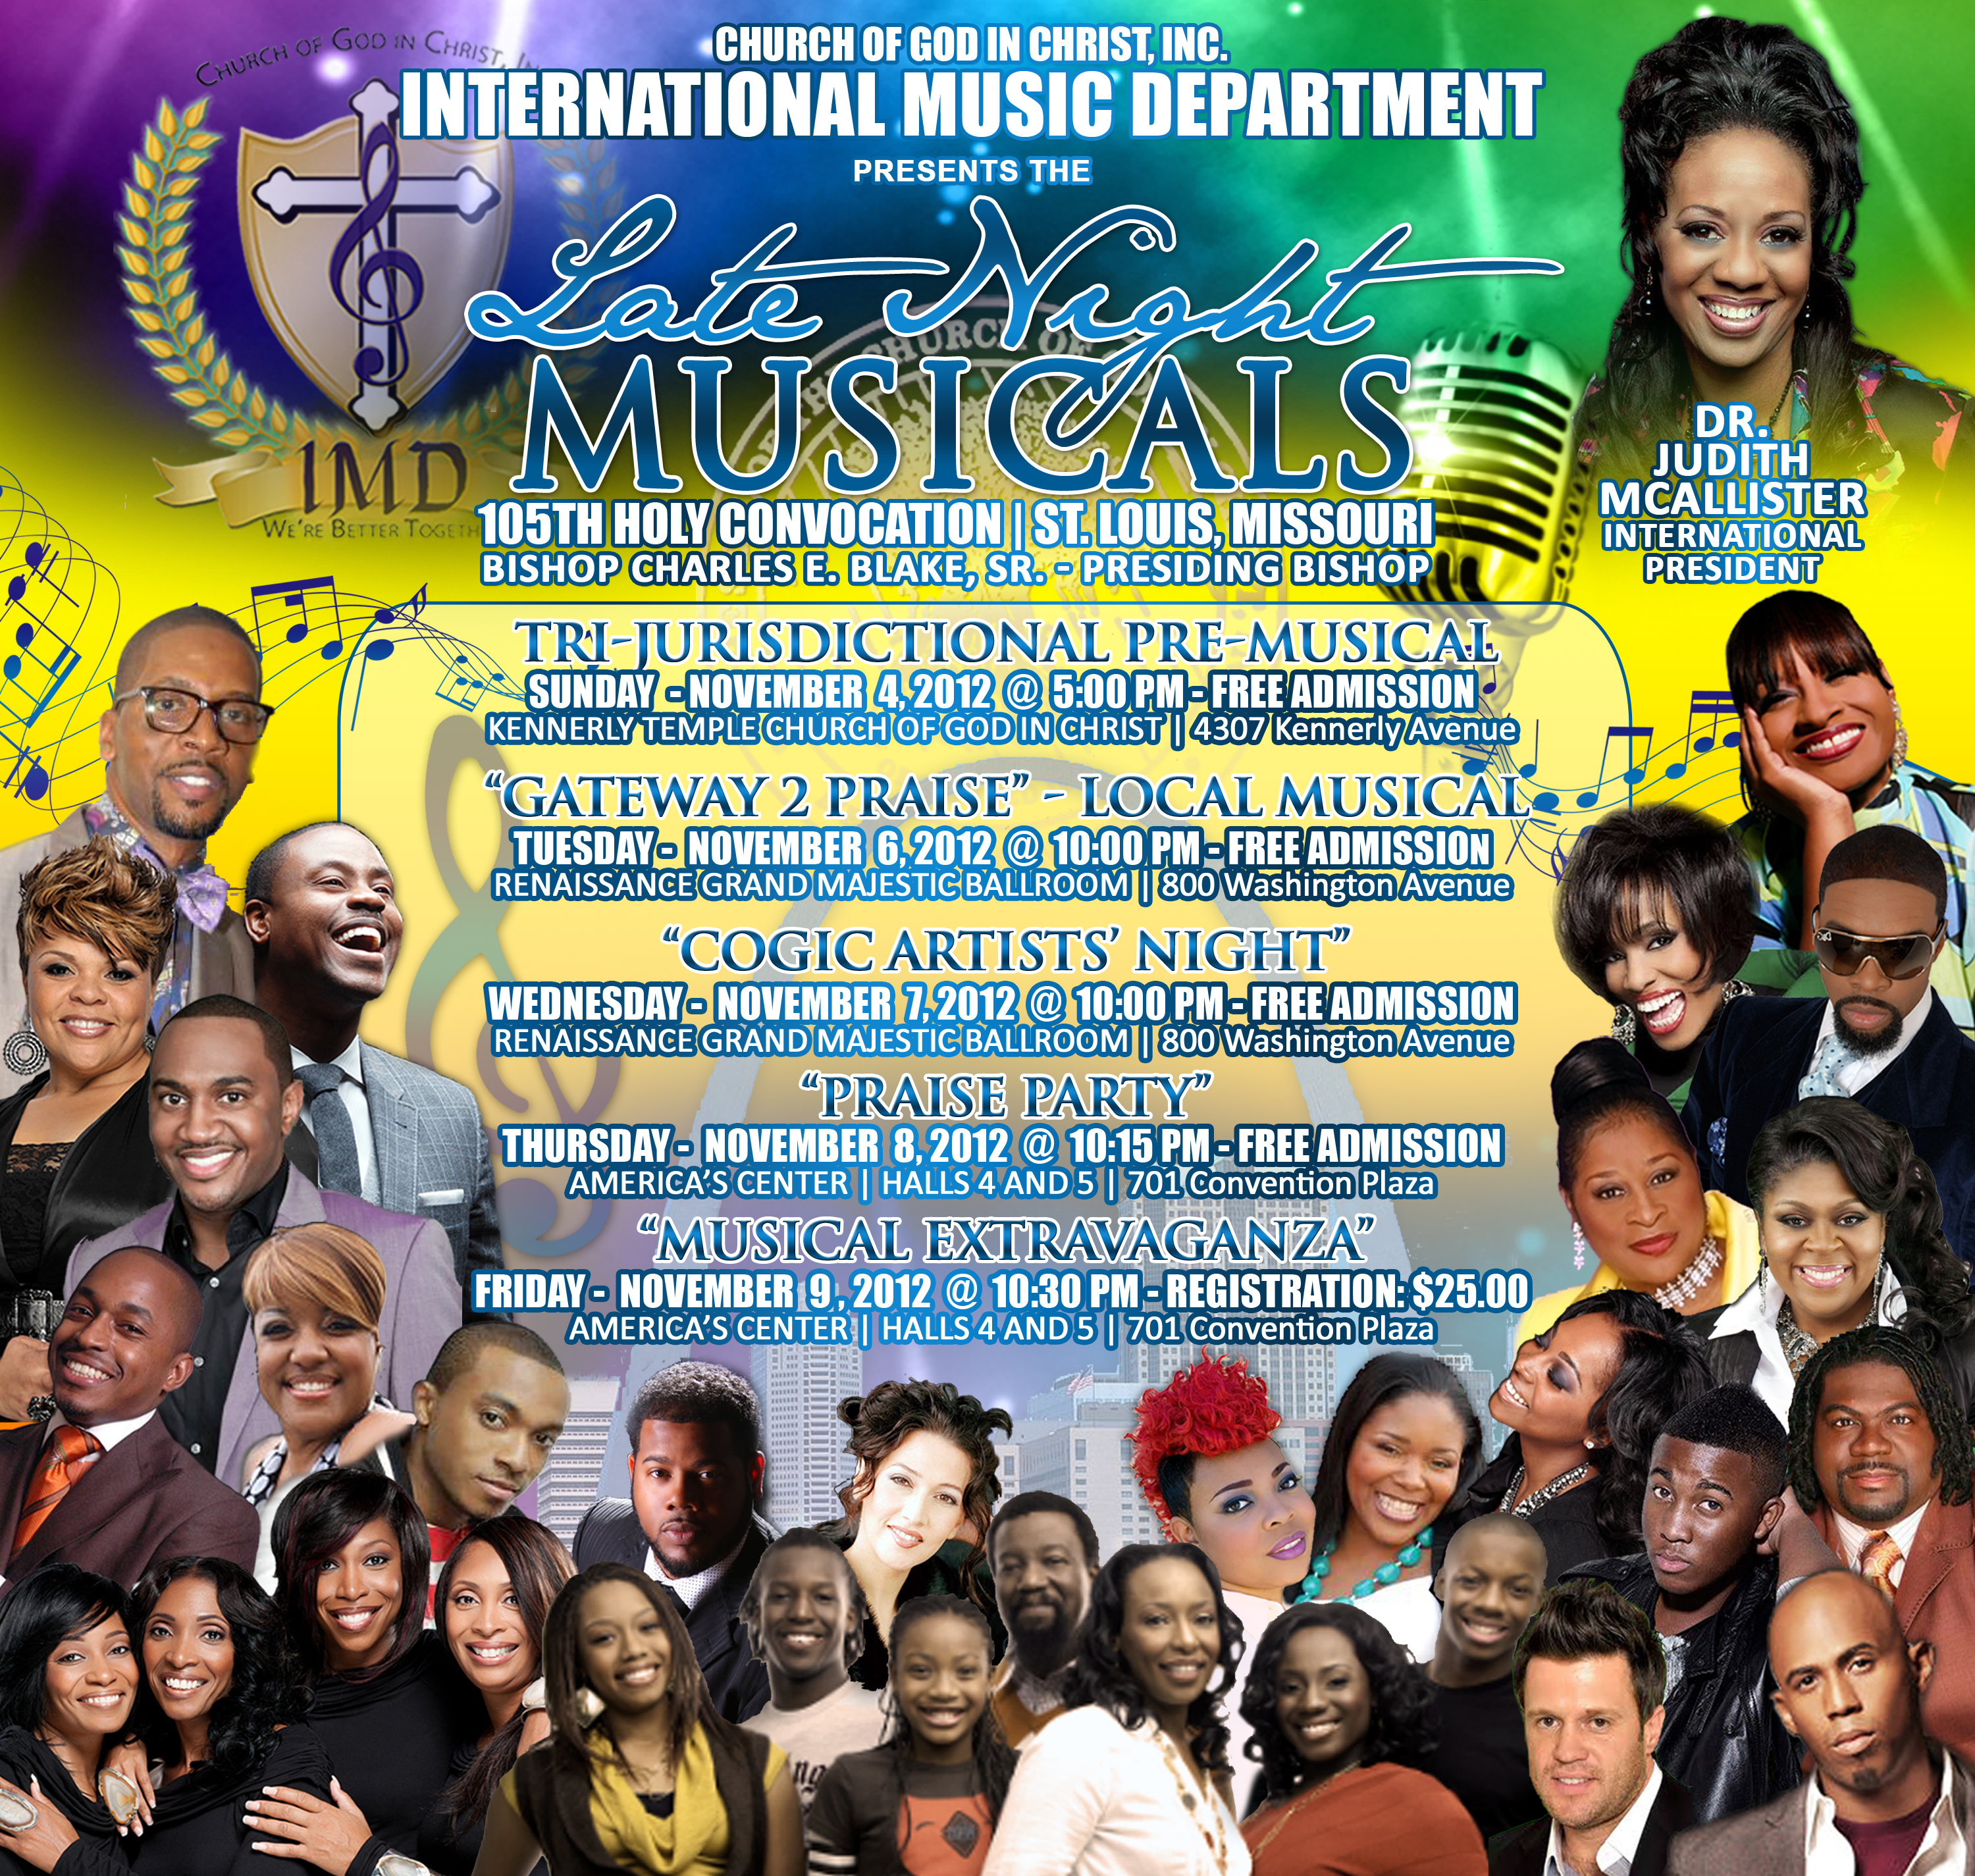 2012MUSICALS of the 105th annual holy convocation